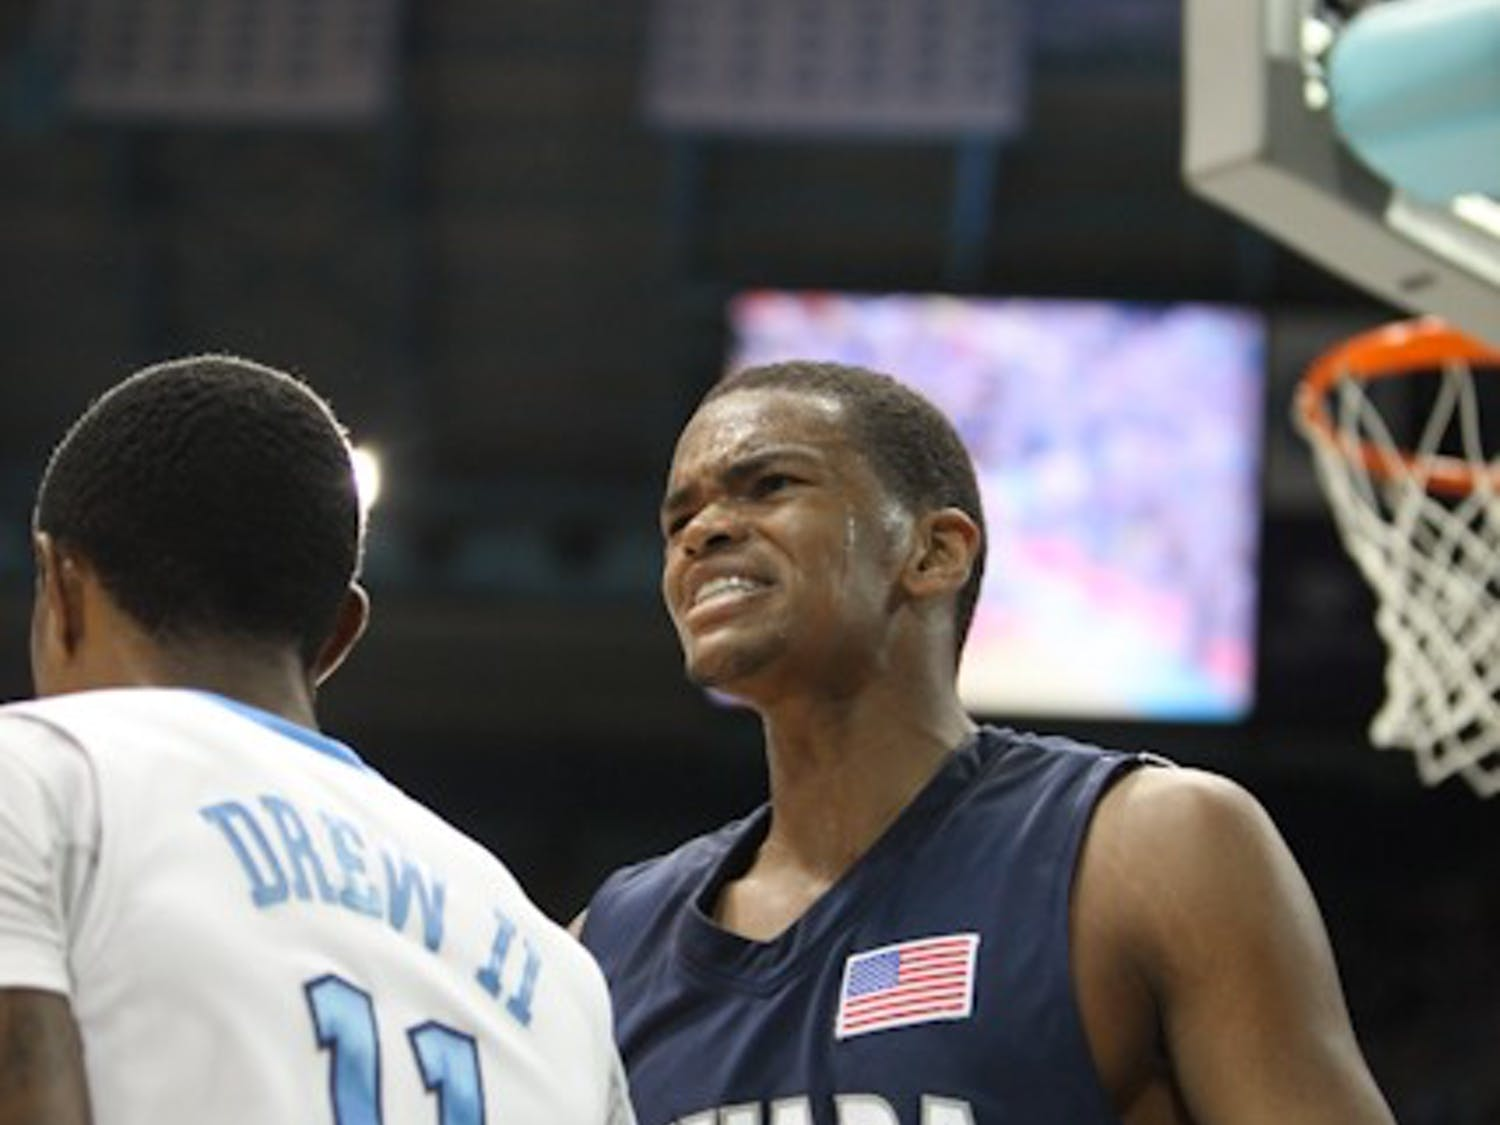 Larry Drew II helped lead the Tar Heels to a 80-73 victory against Nevada.